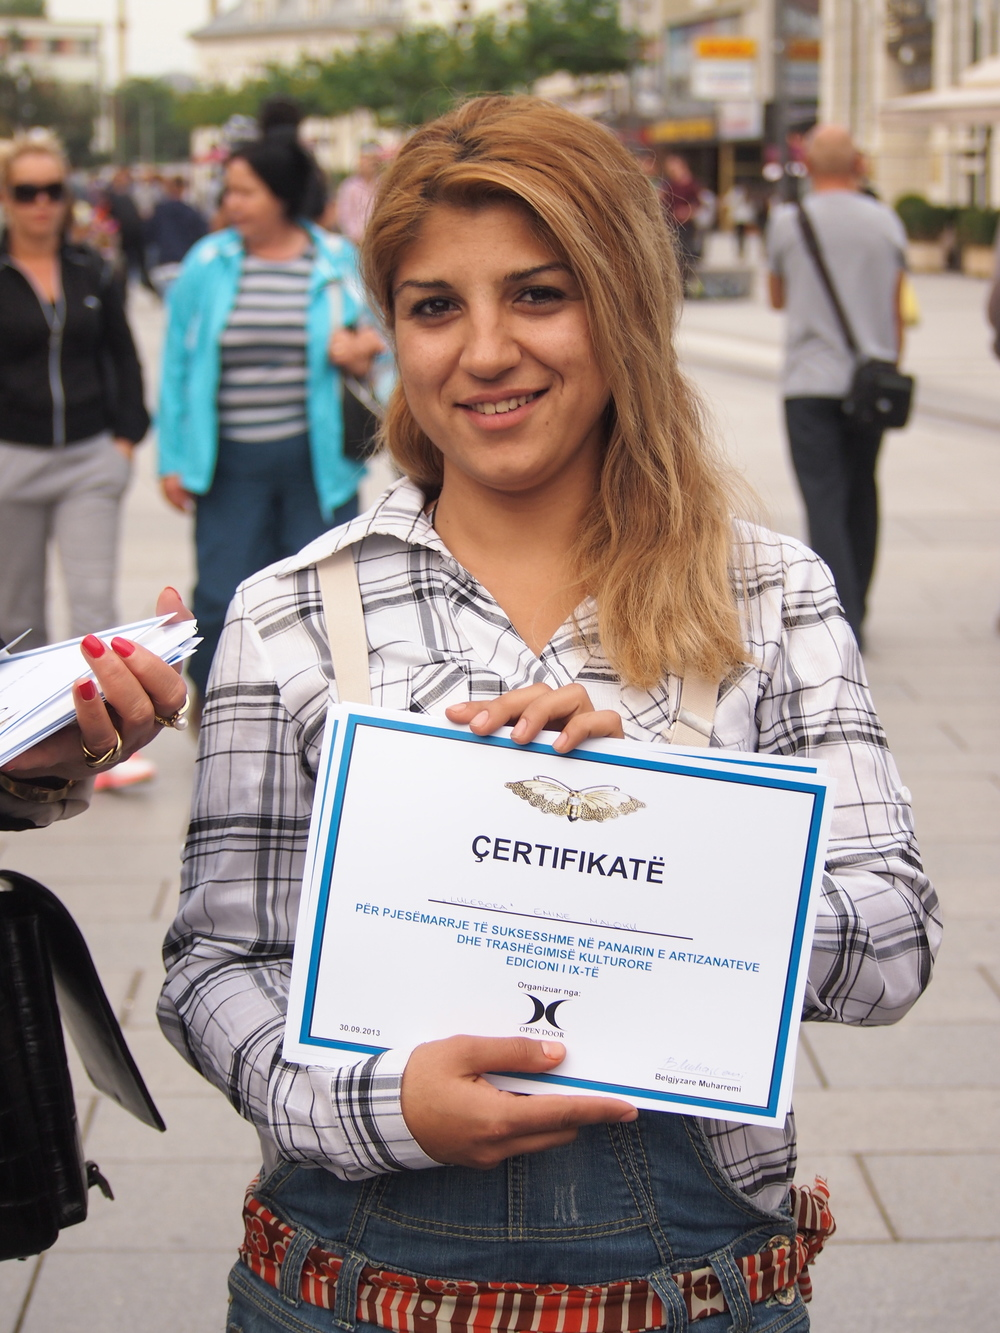 Vullneti i Grave member receives certificate at the 'Handicrafts and Cultural Heritage Fair 2013'